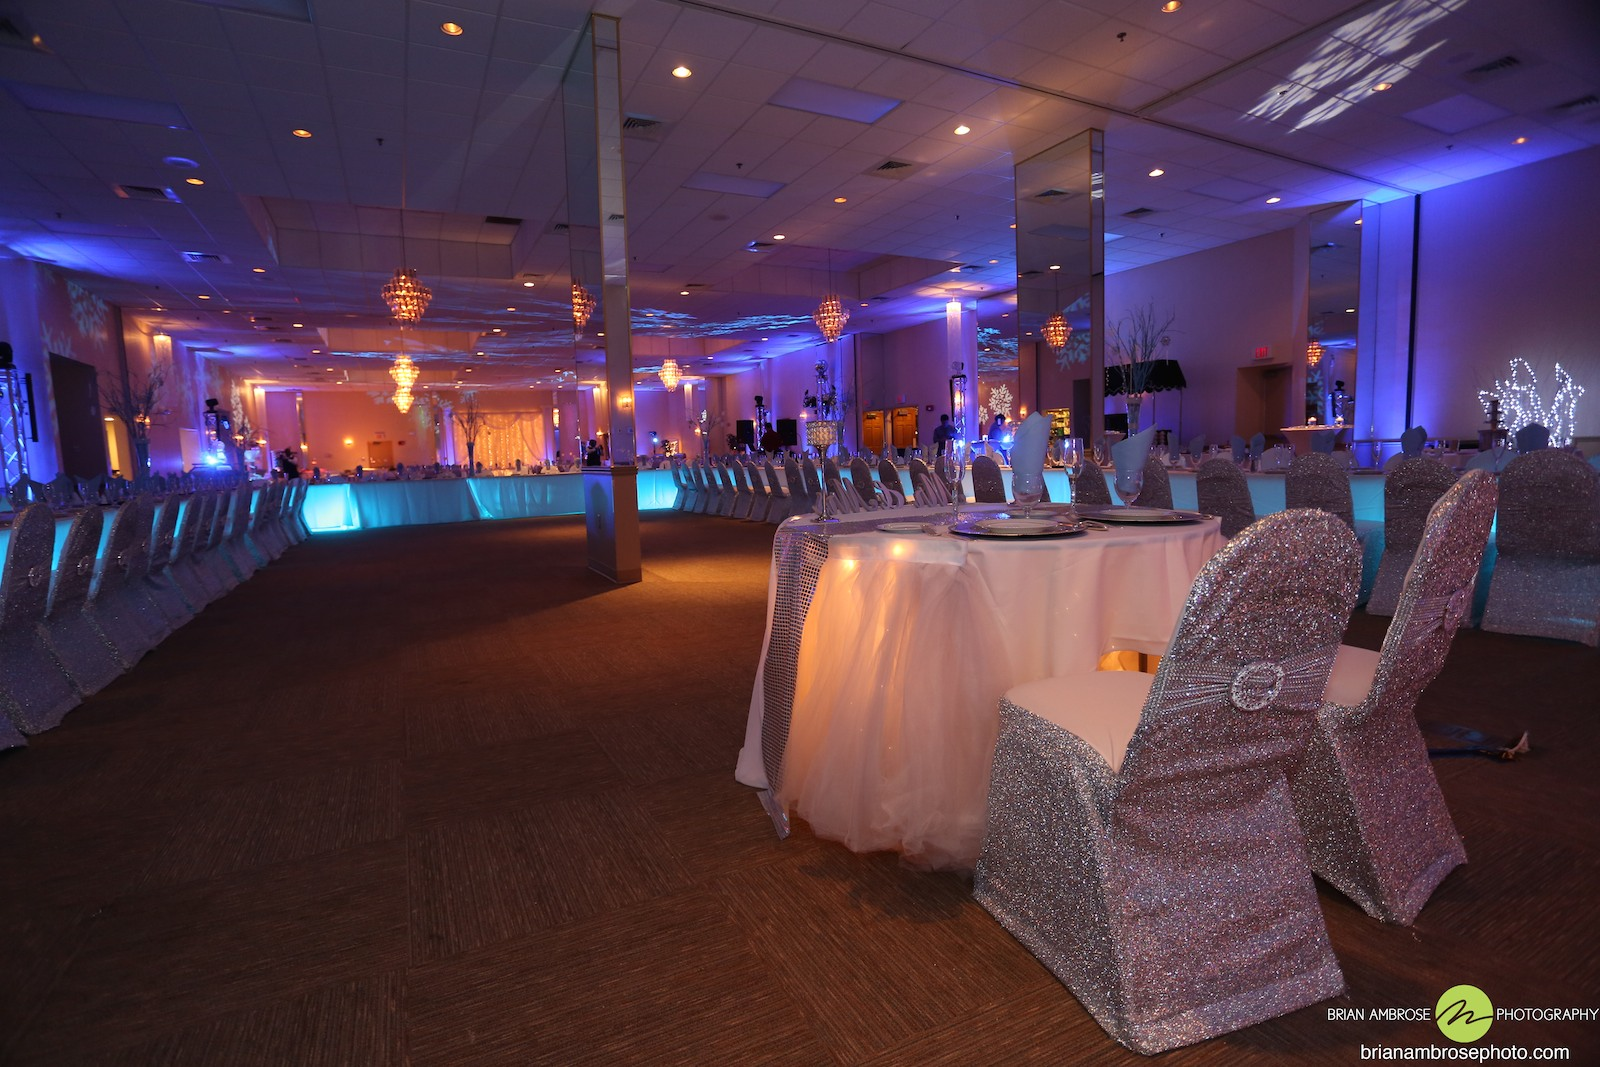 Make your event special.